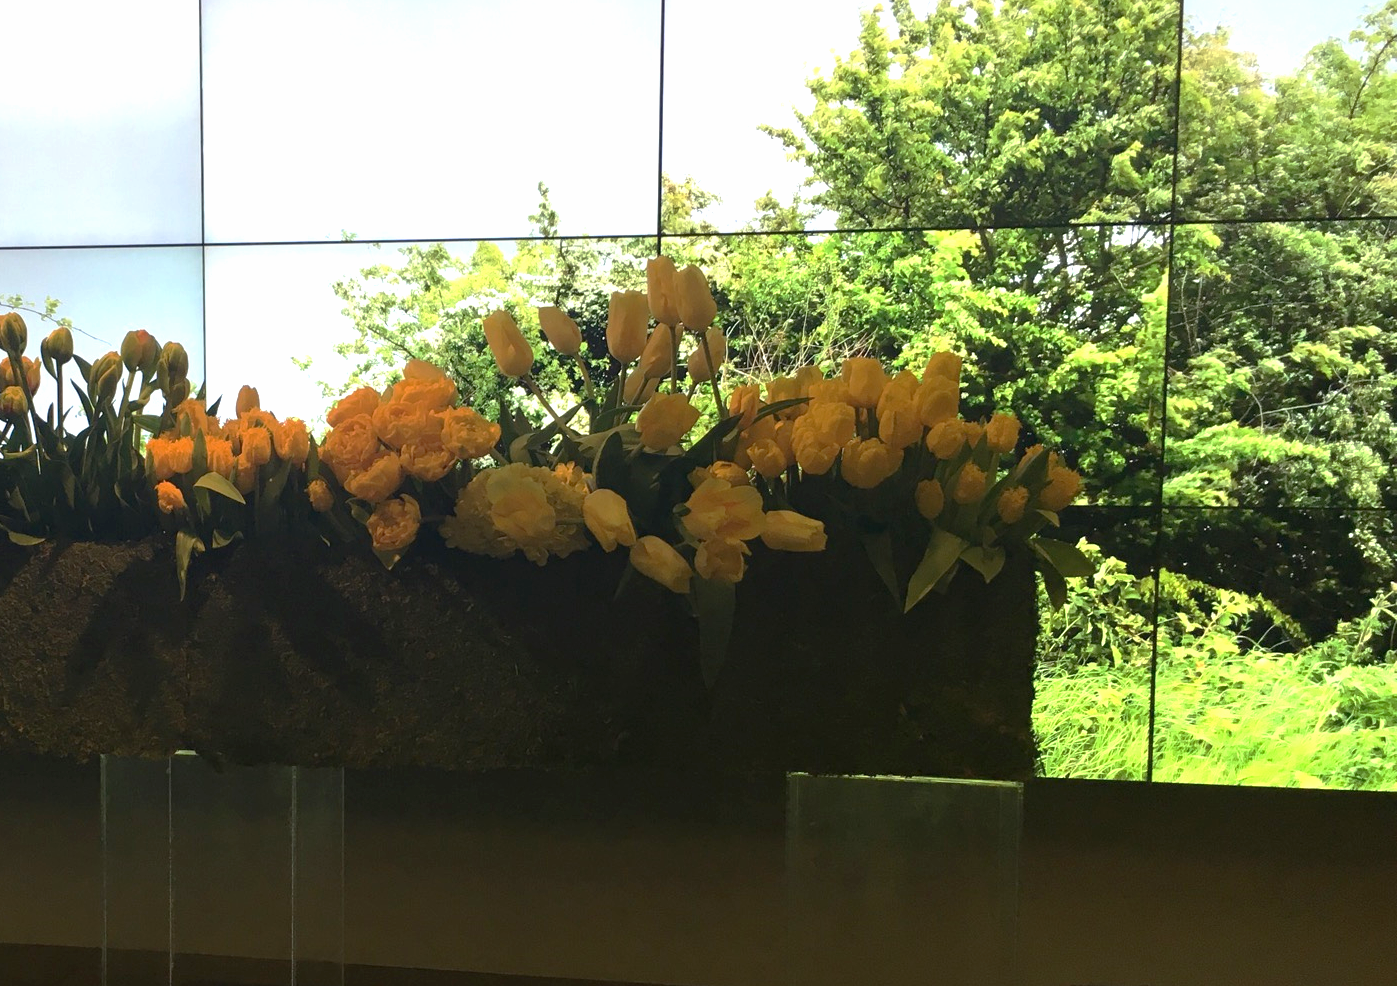 The opening to the exhibit was an arrangement of tulips paired with a video screen that played rotating scenes of nature.